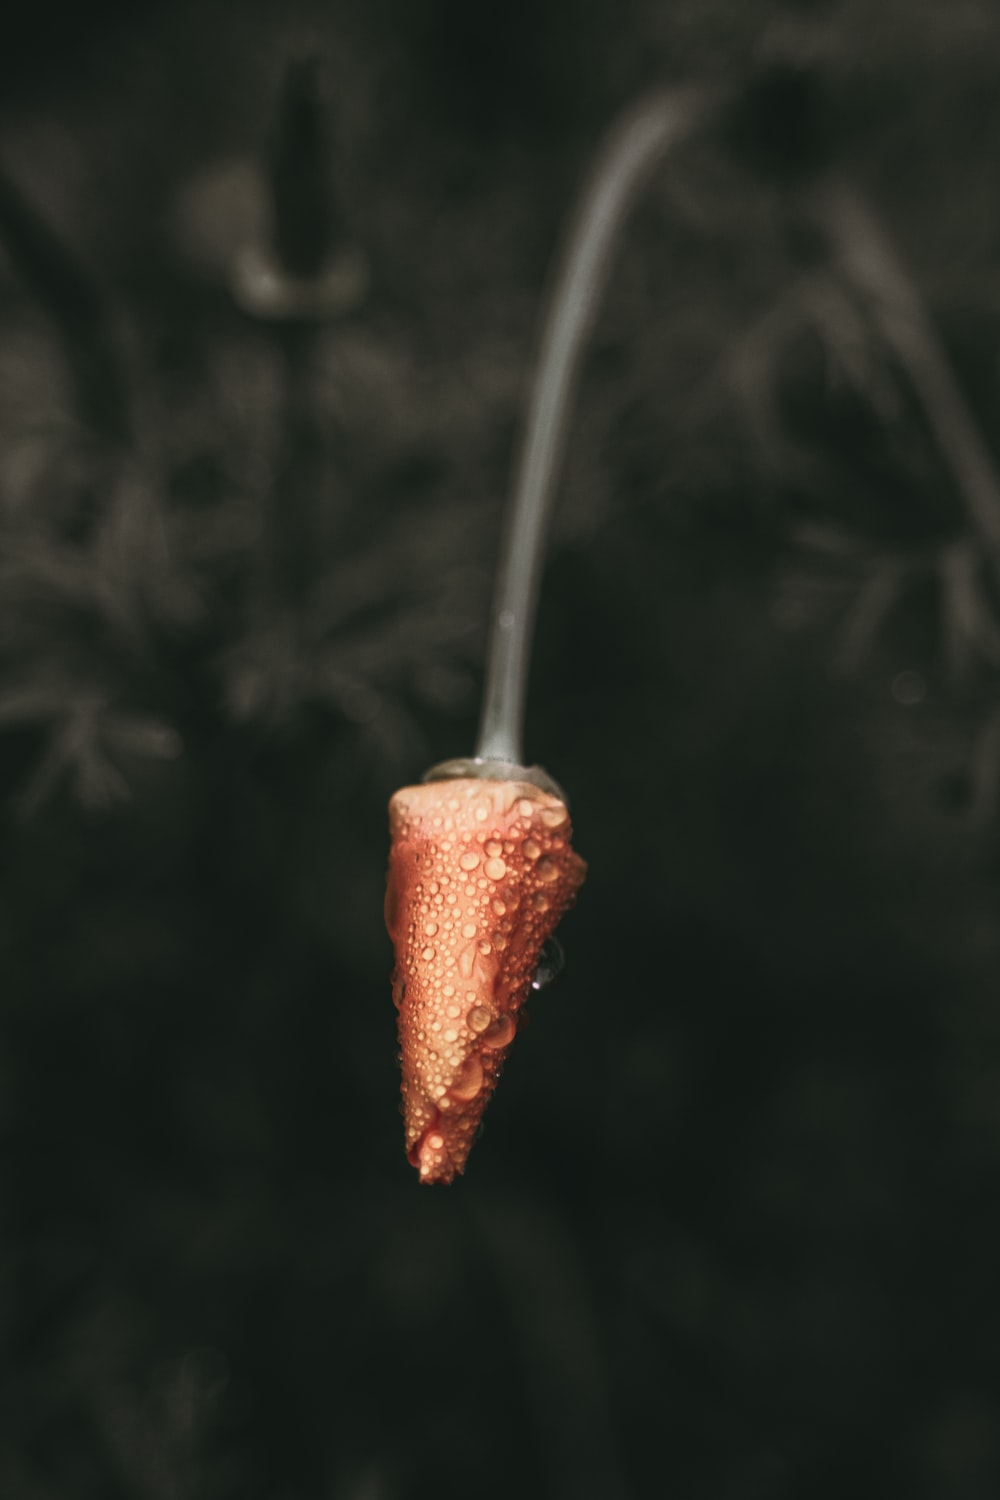 red fruit on stick with water dew